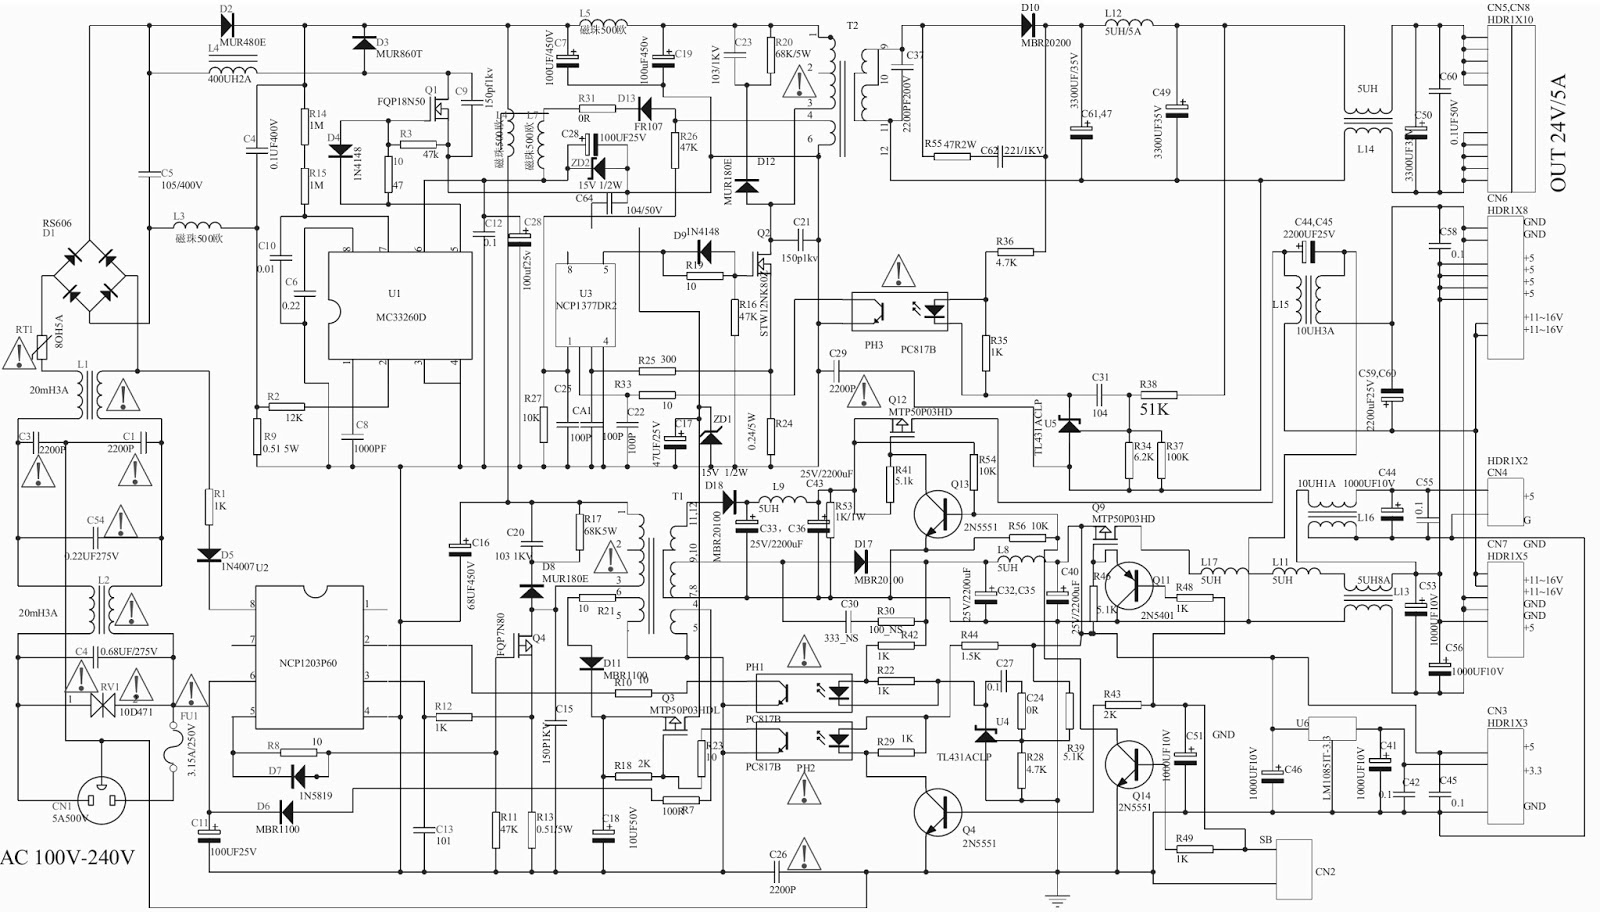 hight resolution of toshiba dlp 52hm95 wiring diagram wiring diagramwiring toshiba diagram laptop3613u 1mpc 1 wiring diagram sourcetoshiba 22cv100u